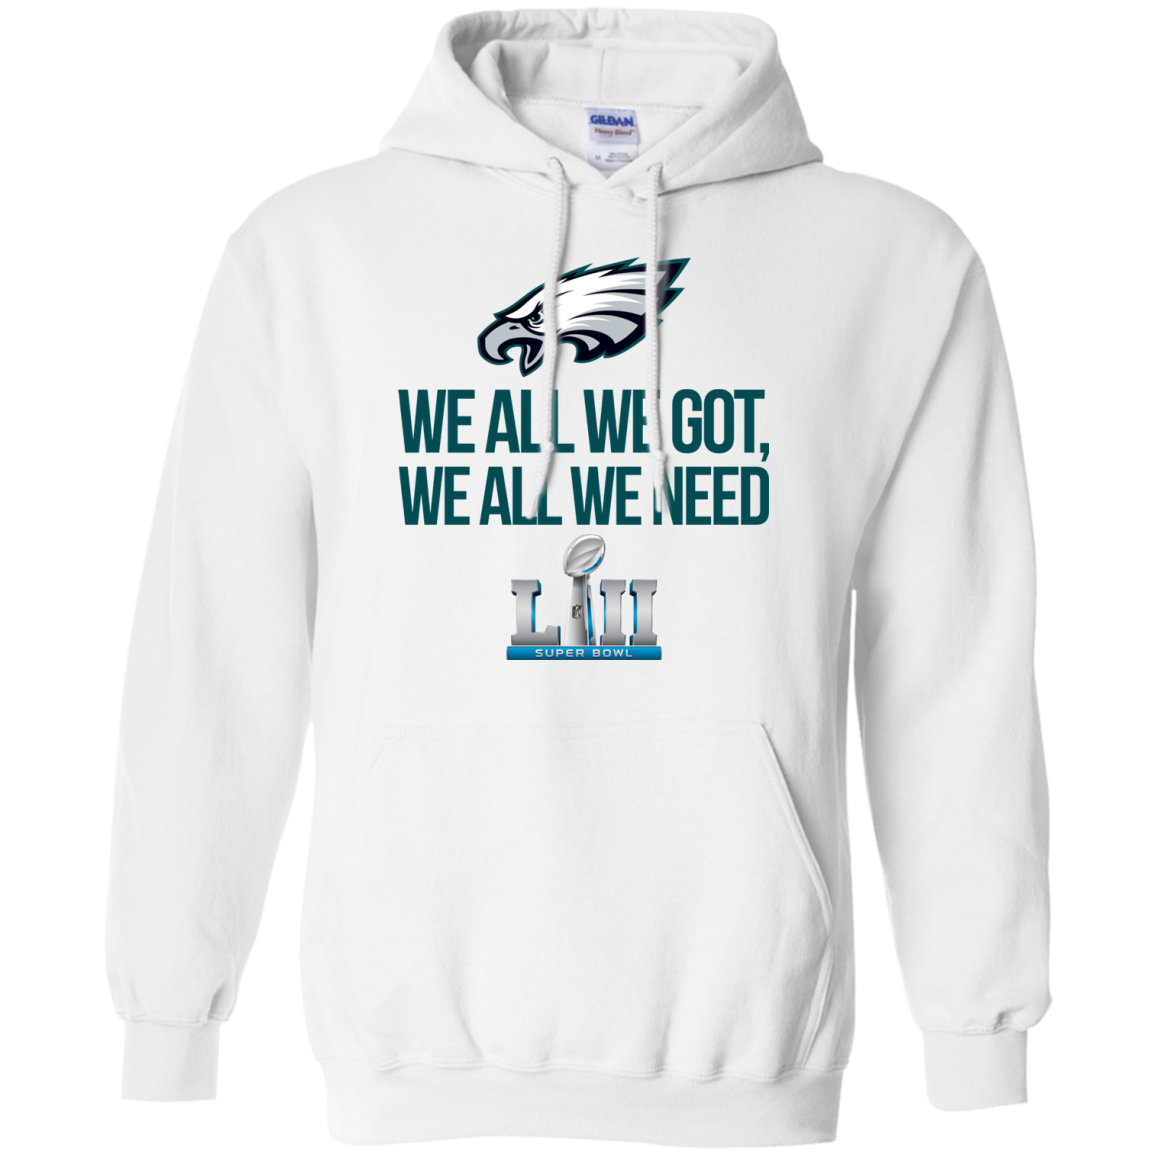 innovative design 2dad0 95eda Philadelphia Eagles We all we got, we all we need champions 2018 shirt